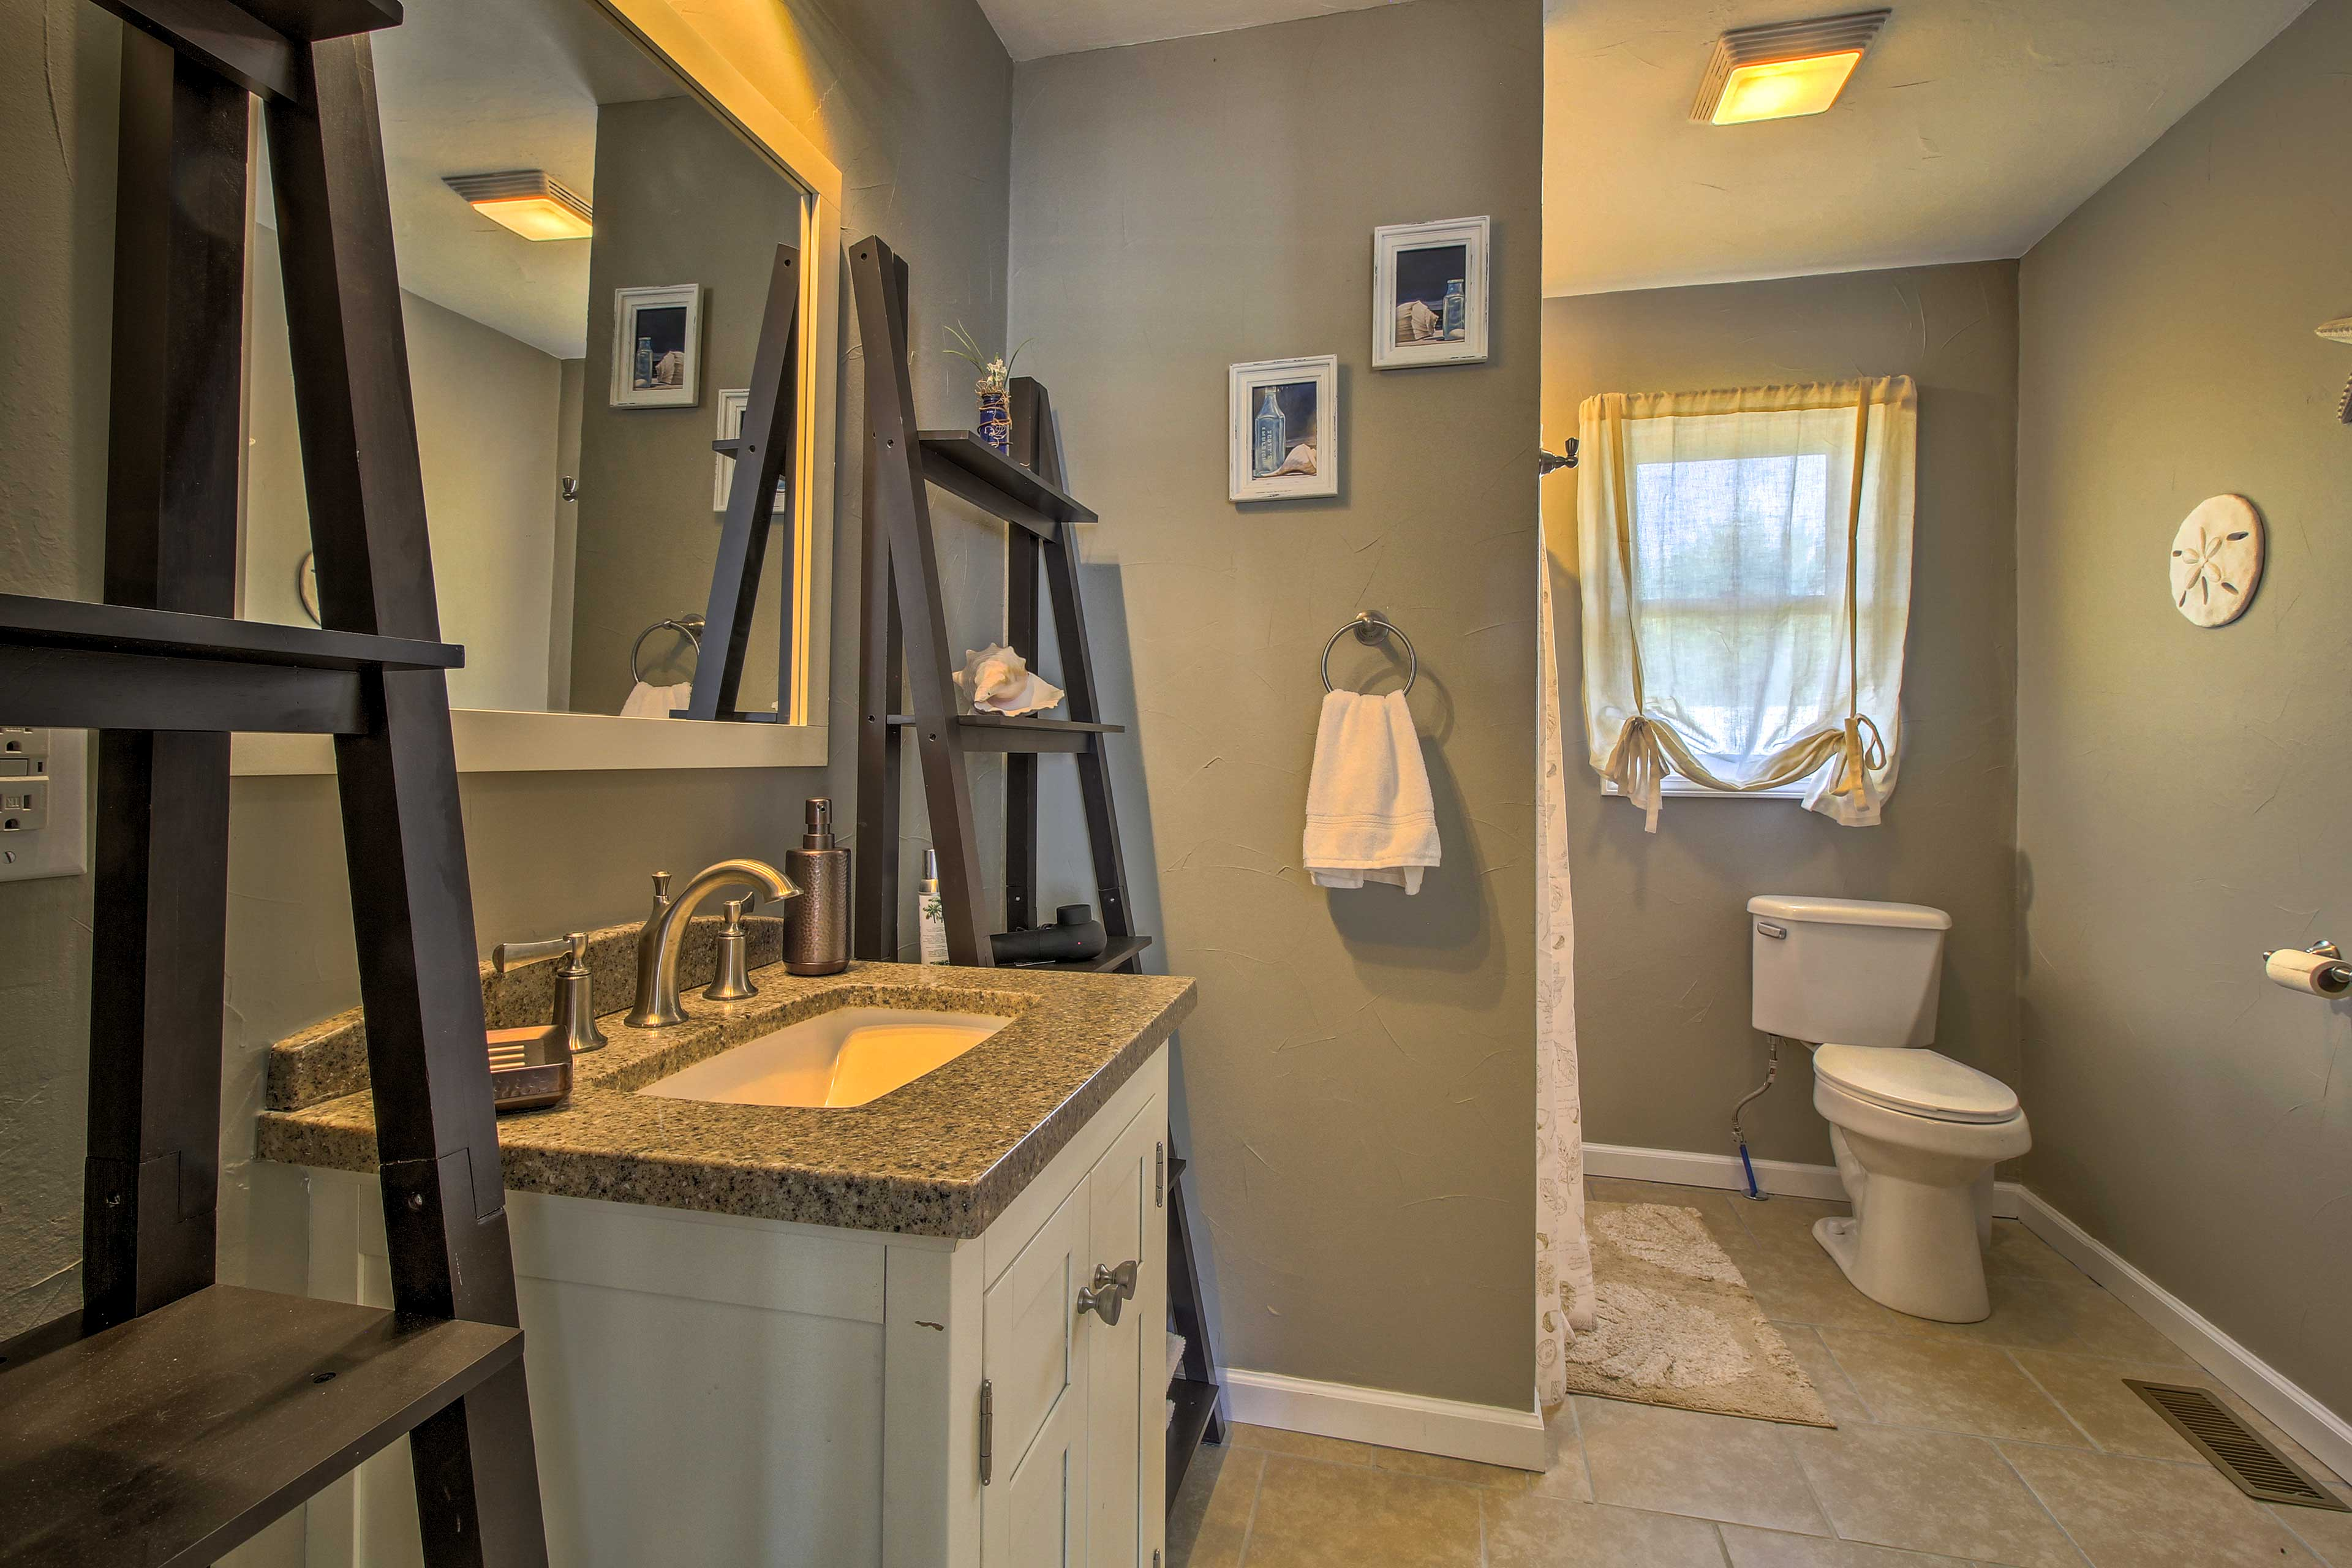 Rinse off in this large full bathroom.